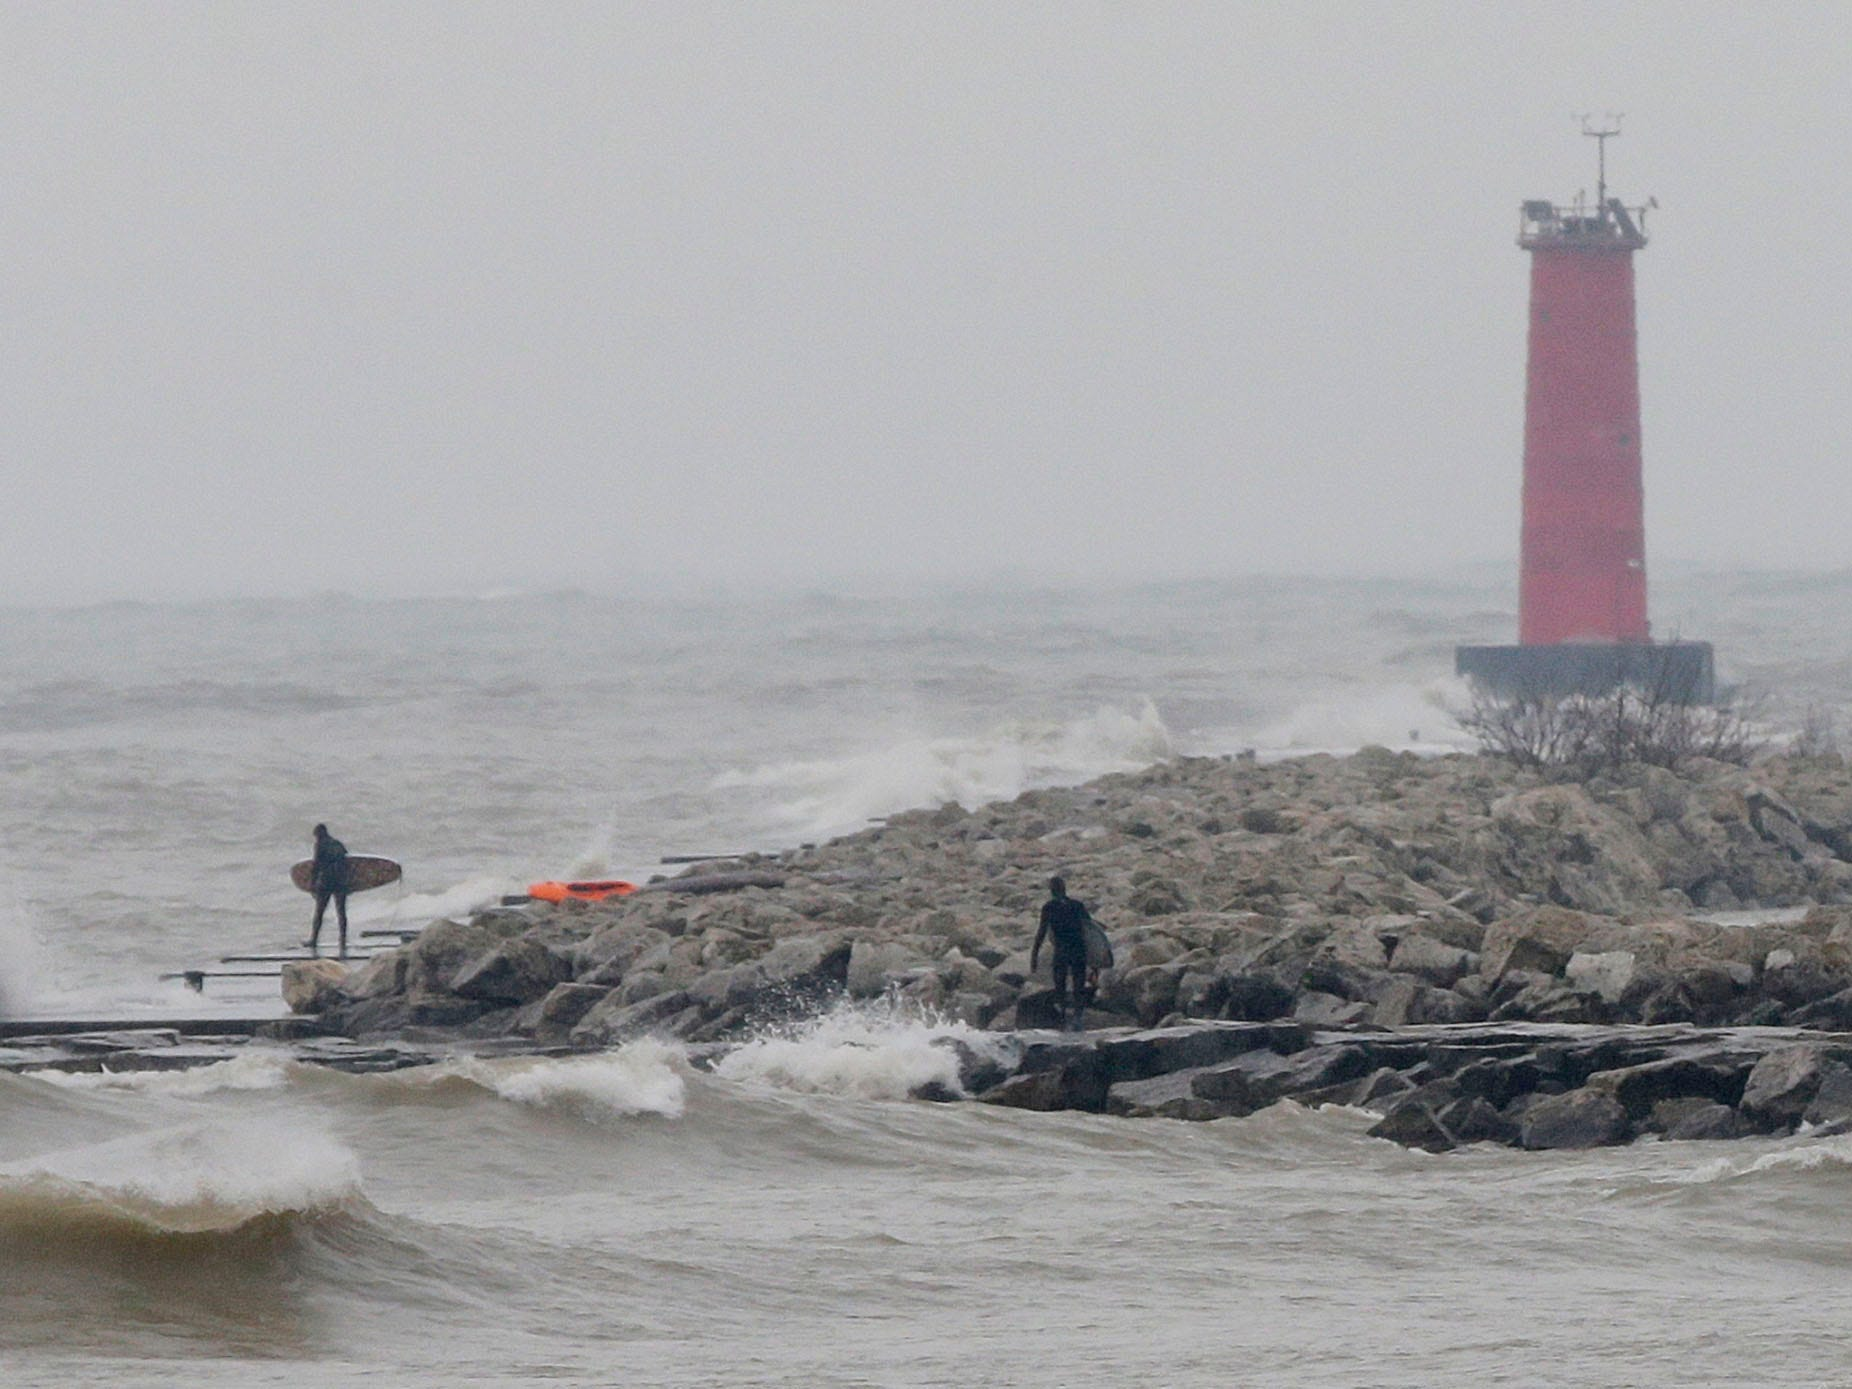 With the Sheboygan lighthouse holding firm, surfers take on waves at Deland Park, Monday, January 7, 2019, in Sheboygan, Wis. Westerly winds of 15-25 knots were expected to be in the 3 to 8 foot range with possibilities as high as 10 feet.